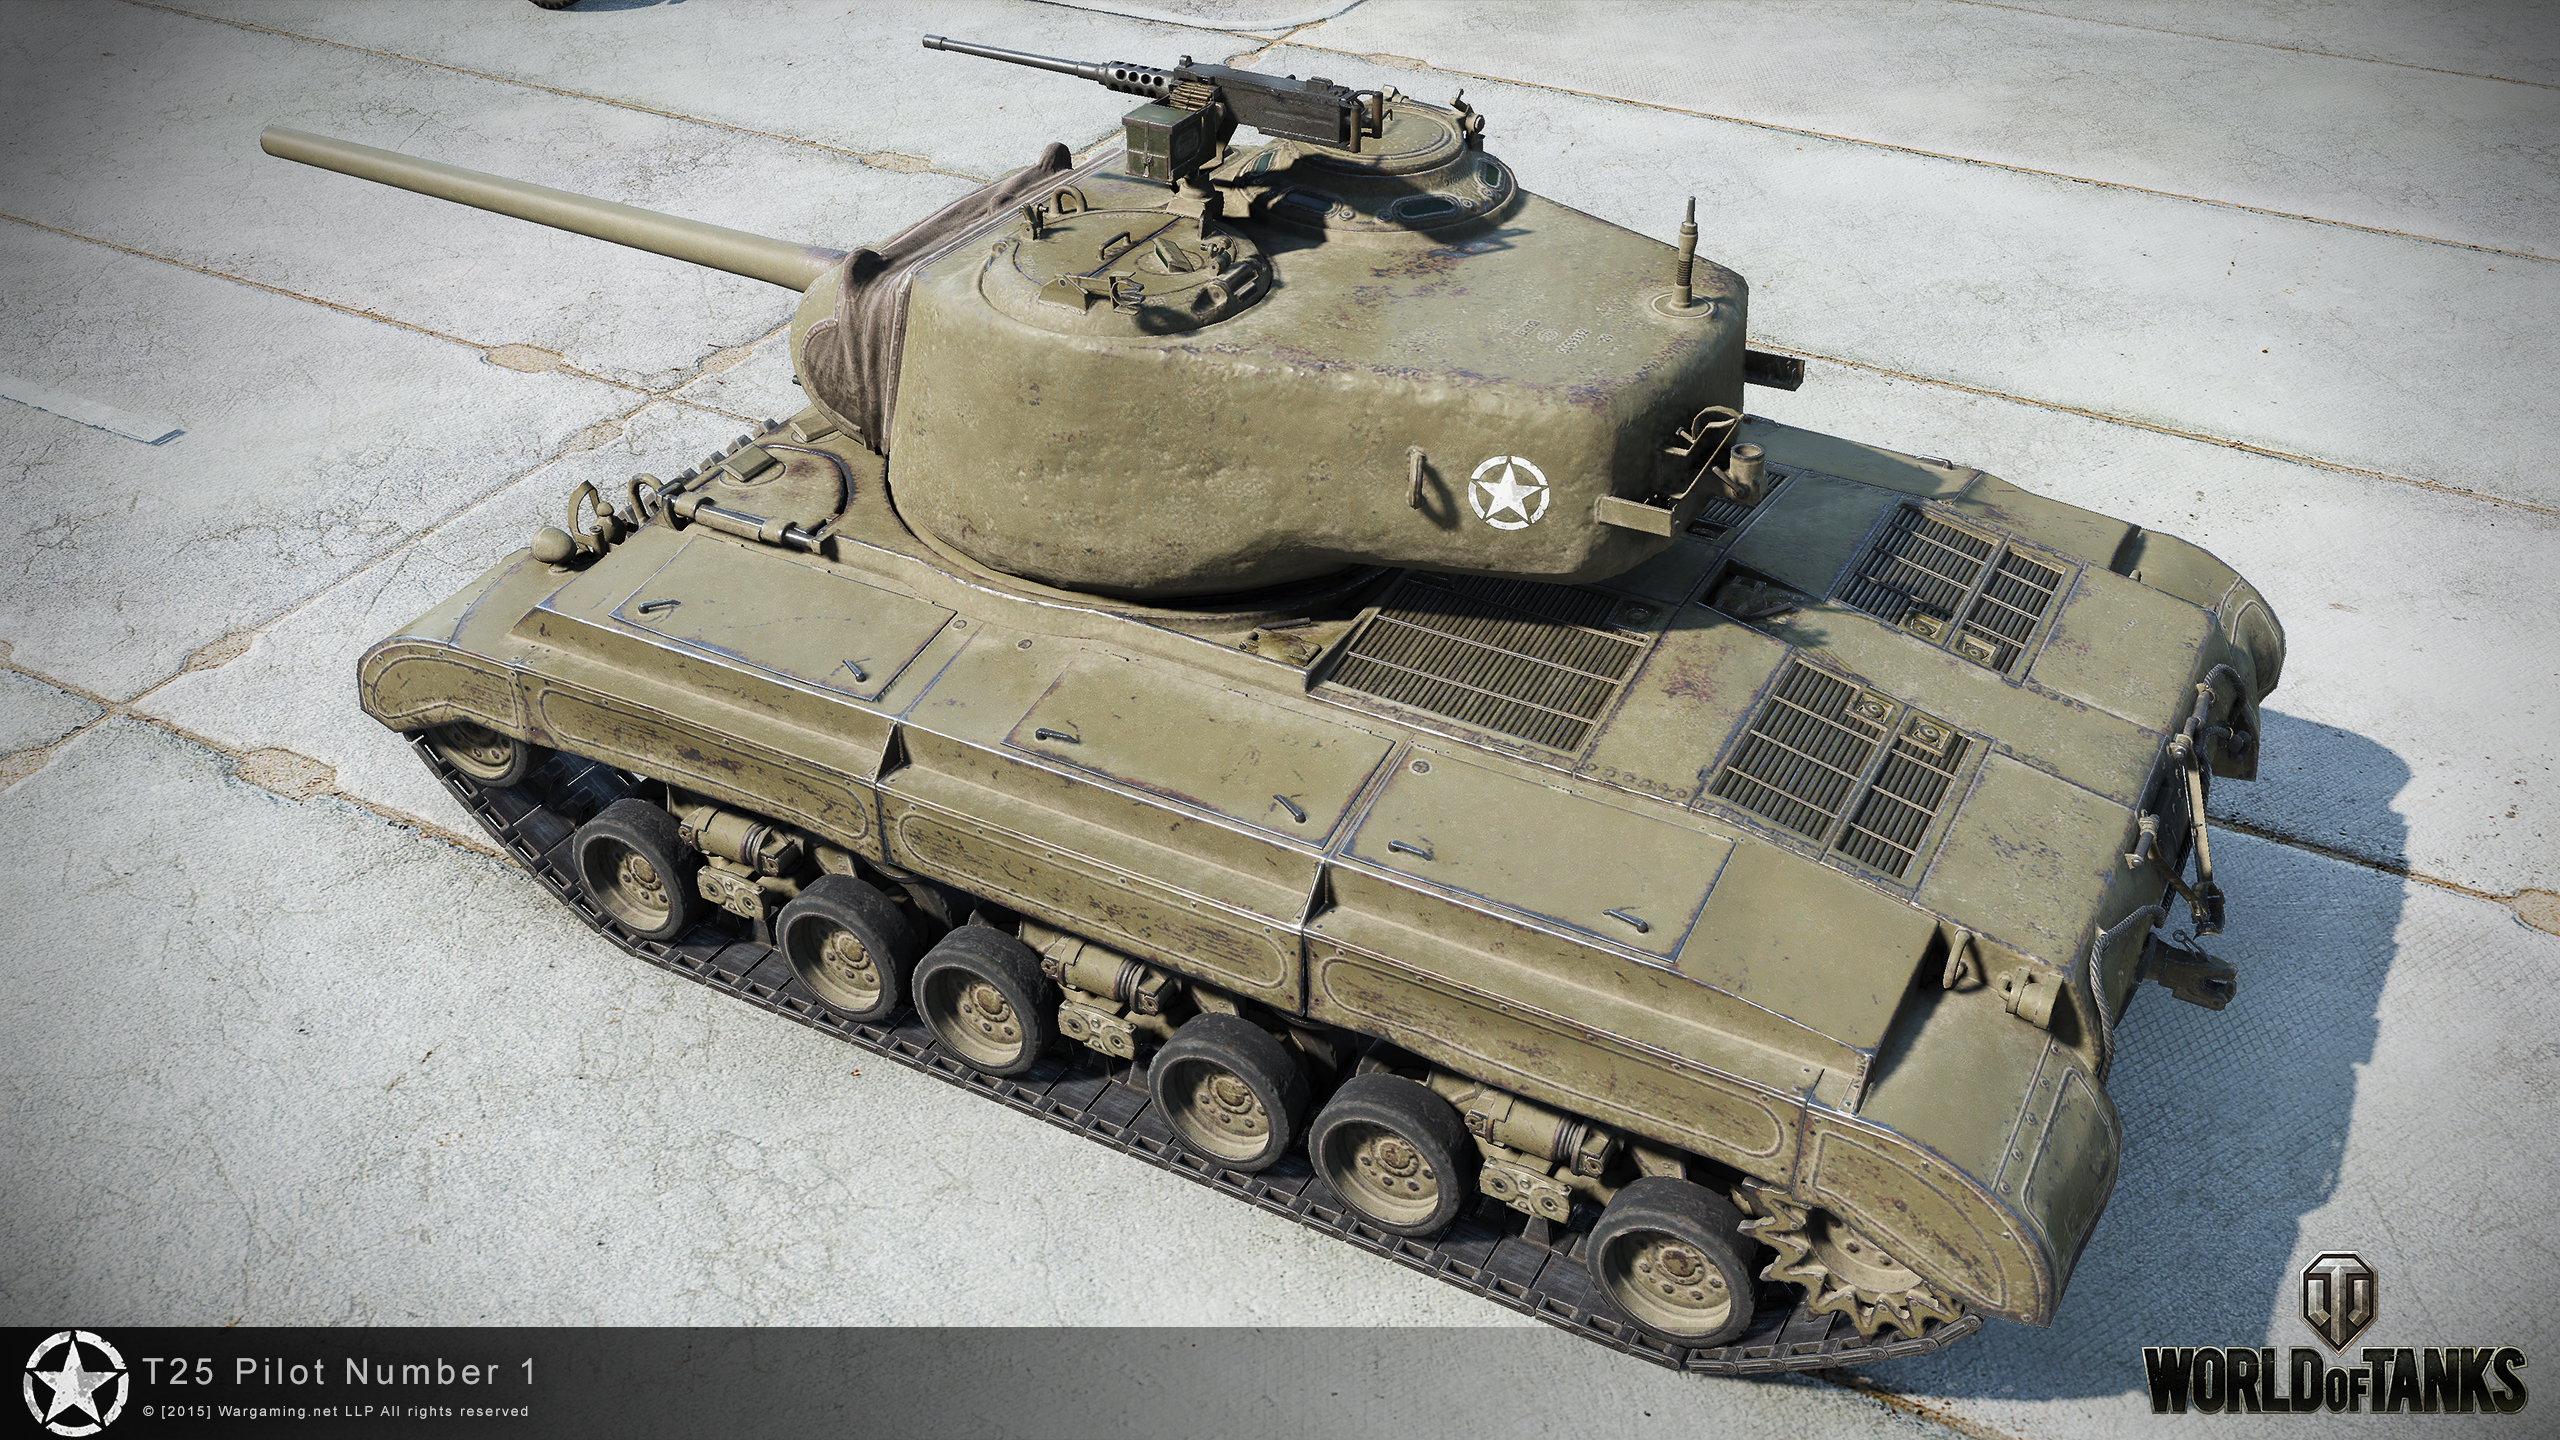 world of tanks matchmaking changes This past may saw us test changes to the kv-5had they proven agreeable, they would have been applied to other preferential tanks the results didn't align with the intended outcome, however, and the majority of player feedback was negative.